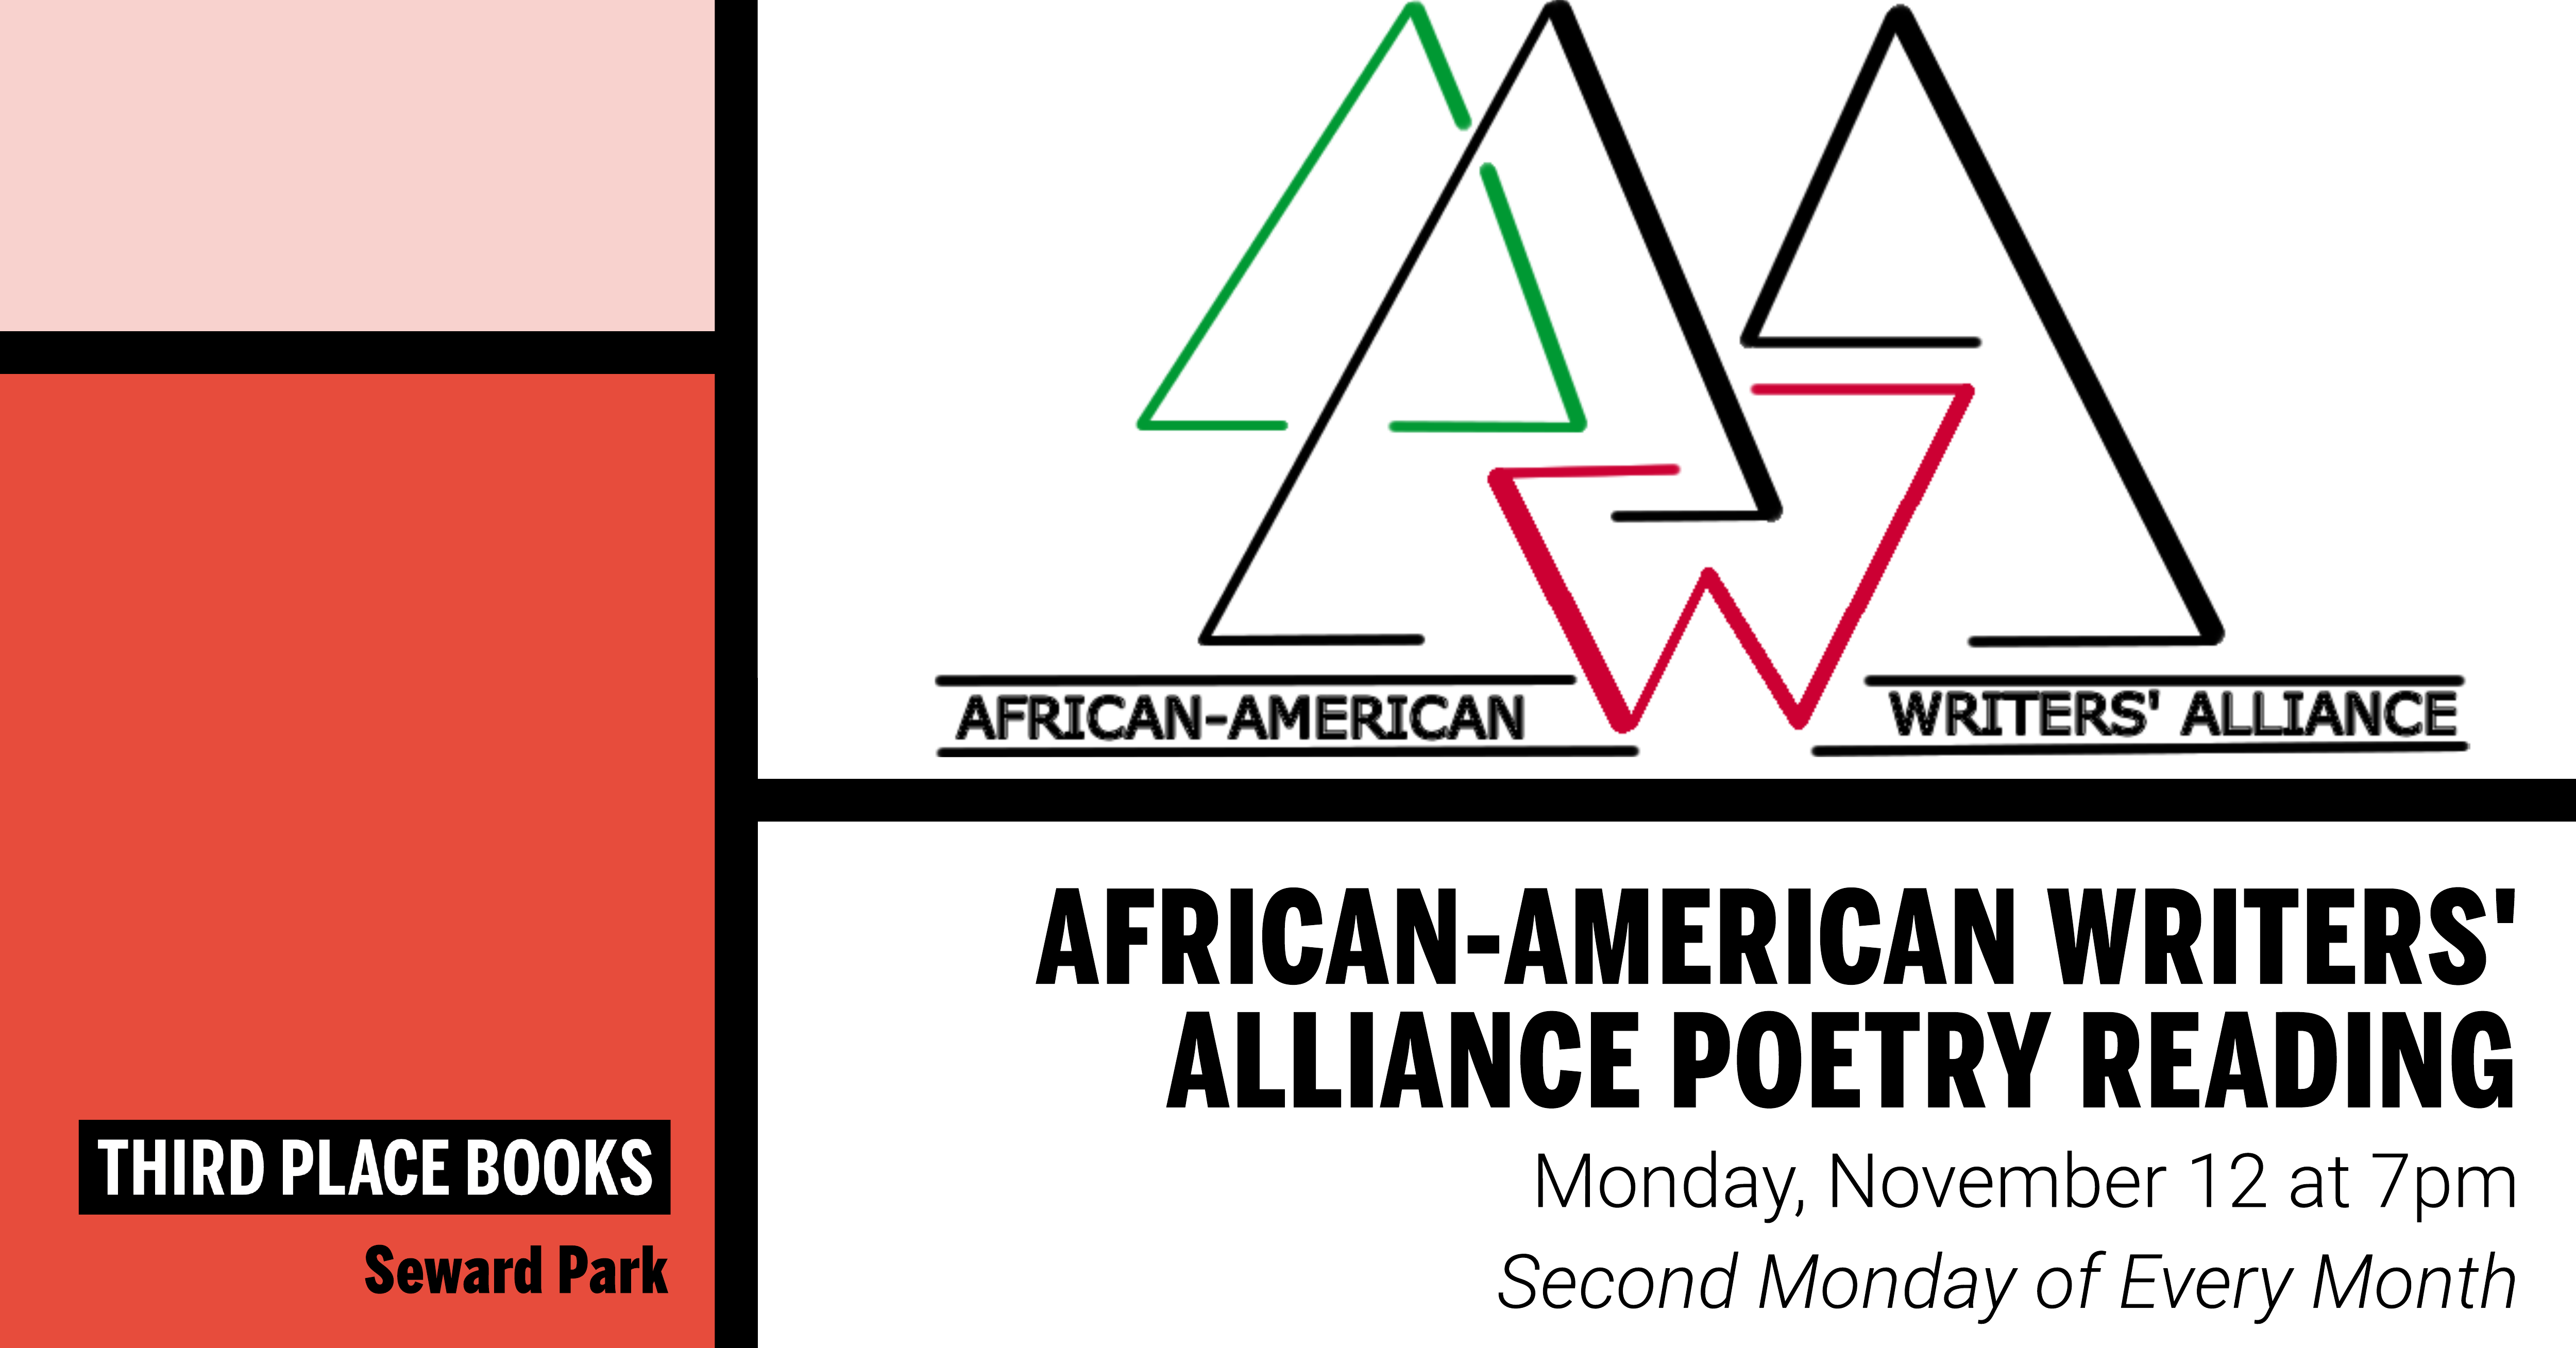 African-American Writers' Alliance Poetry Reading on Monday, November 12 at 7pm